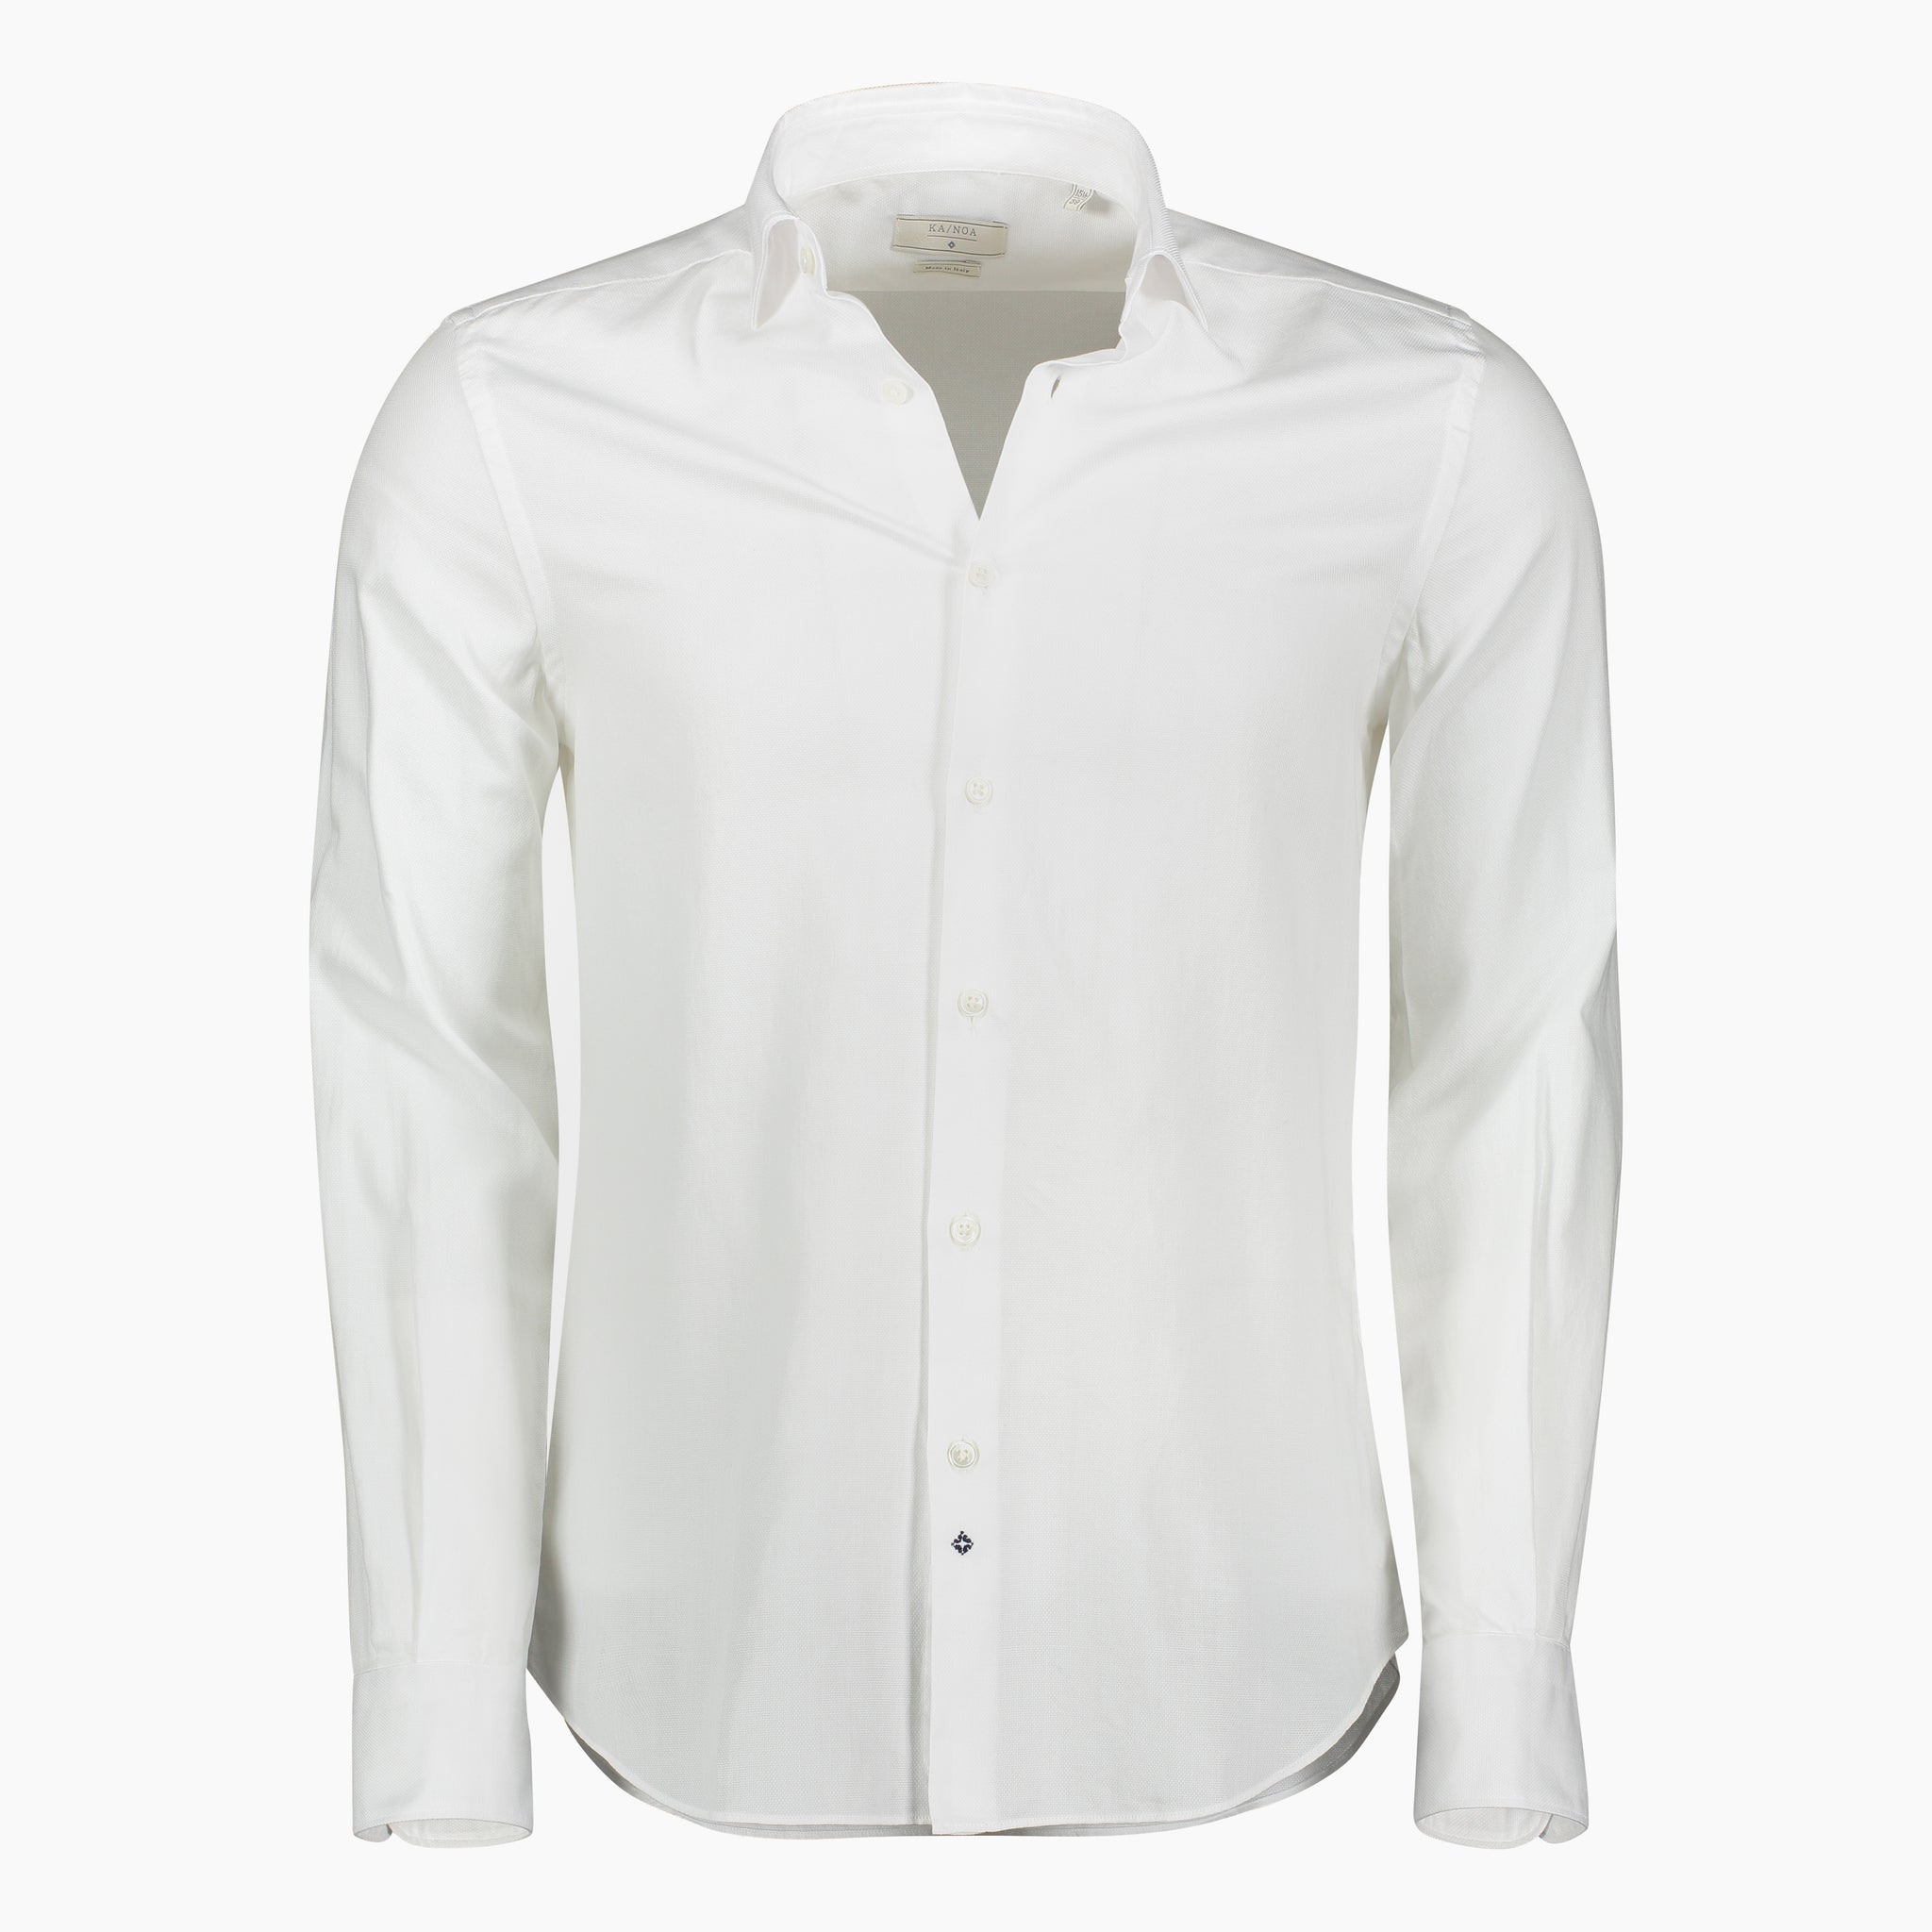 Clamenc shirt cotton popeline (white)